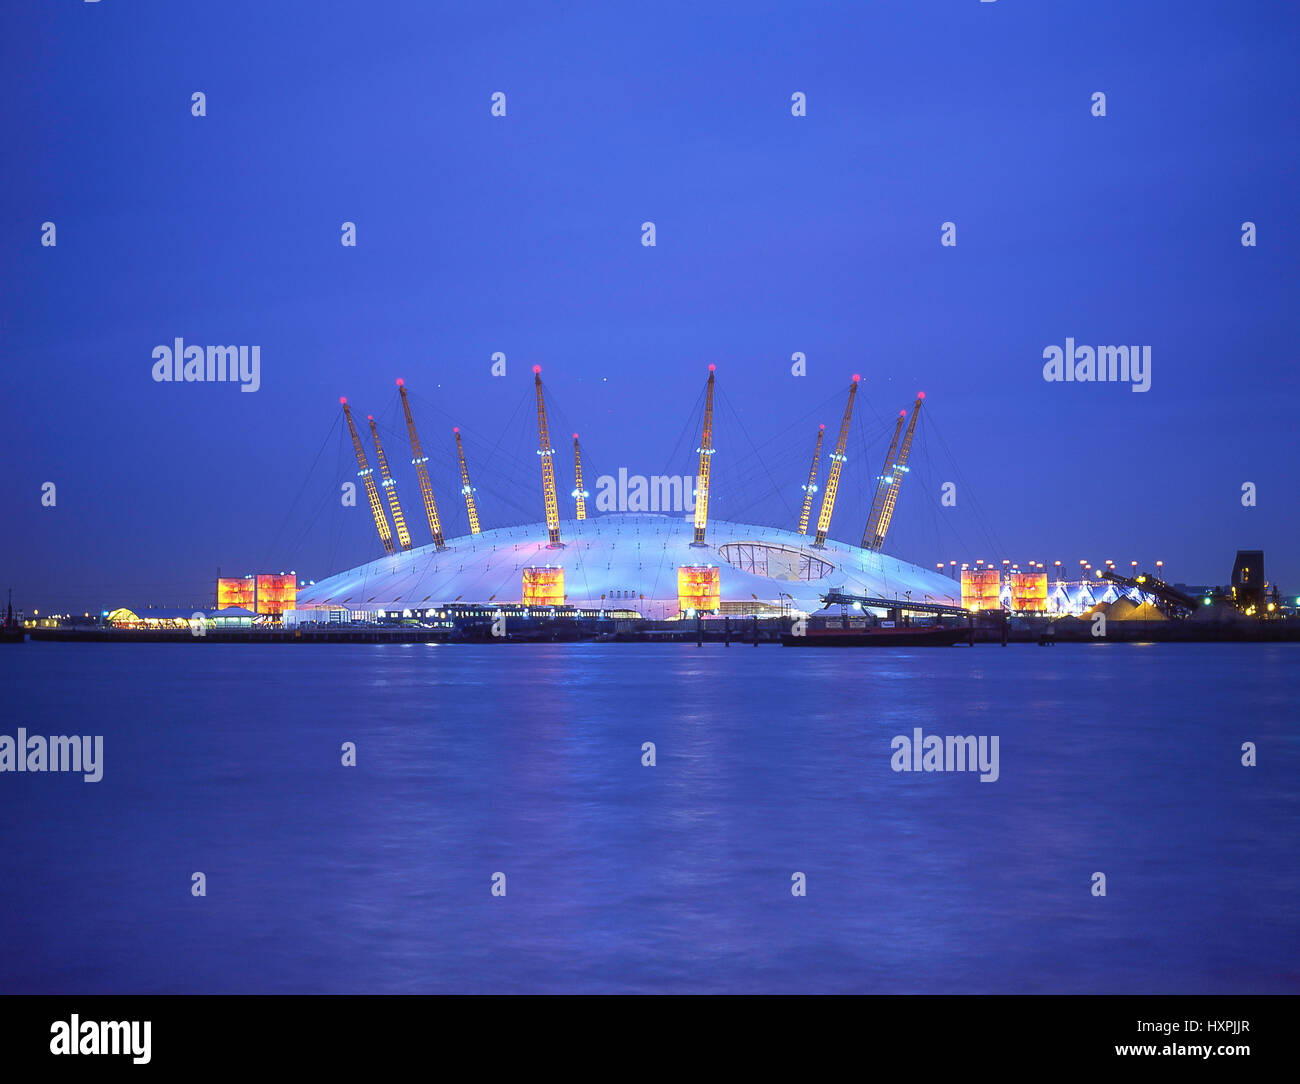 The O2 Arena across River Thames at dusk, Royal Borough of Greenwich, Greater London, England, United Kingdom - Stock Image